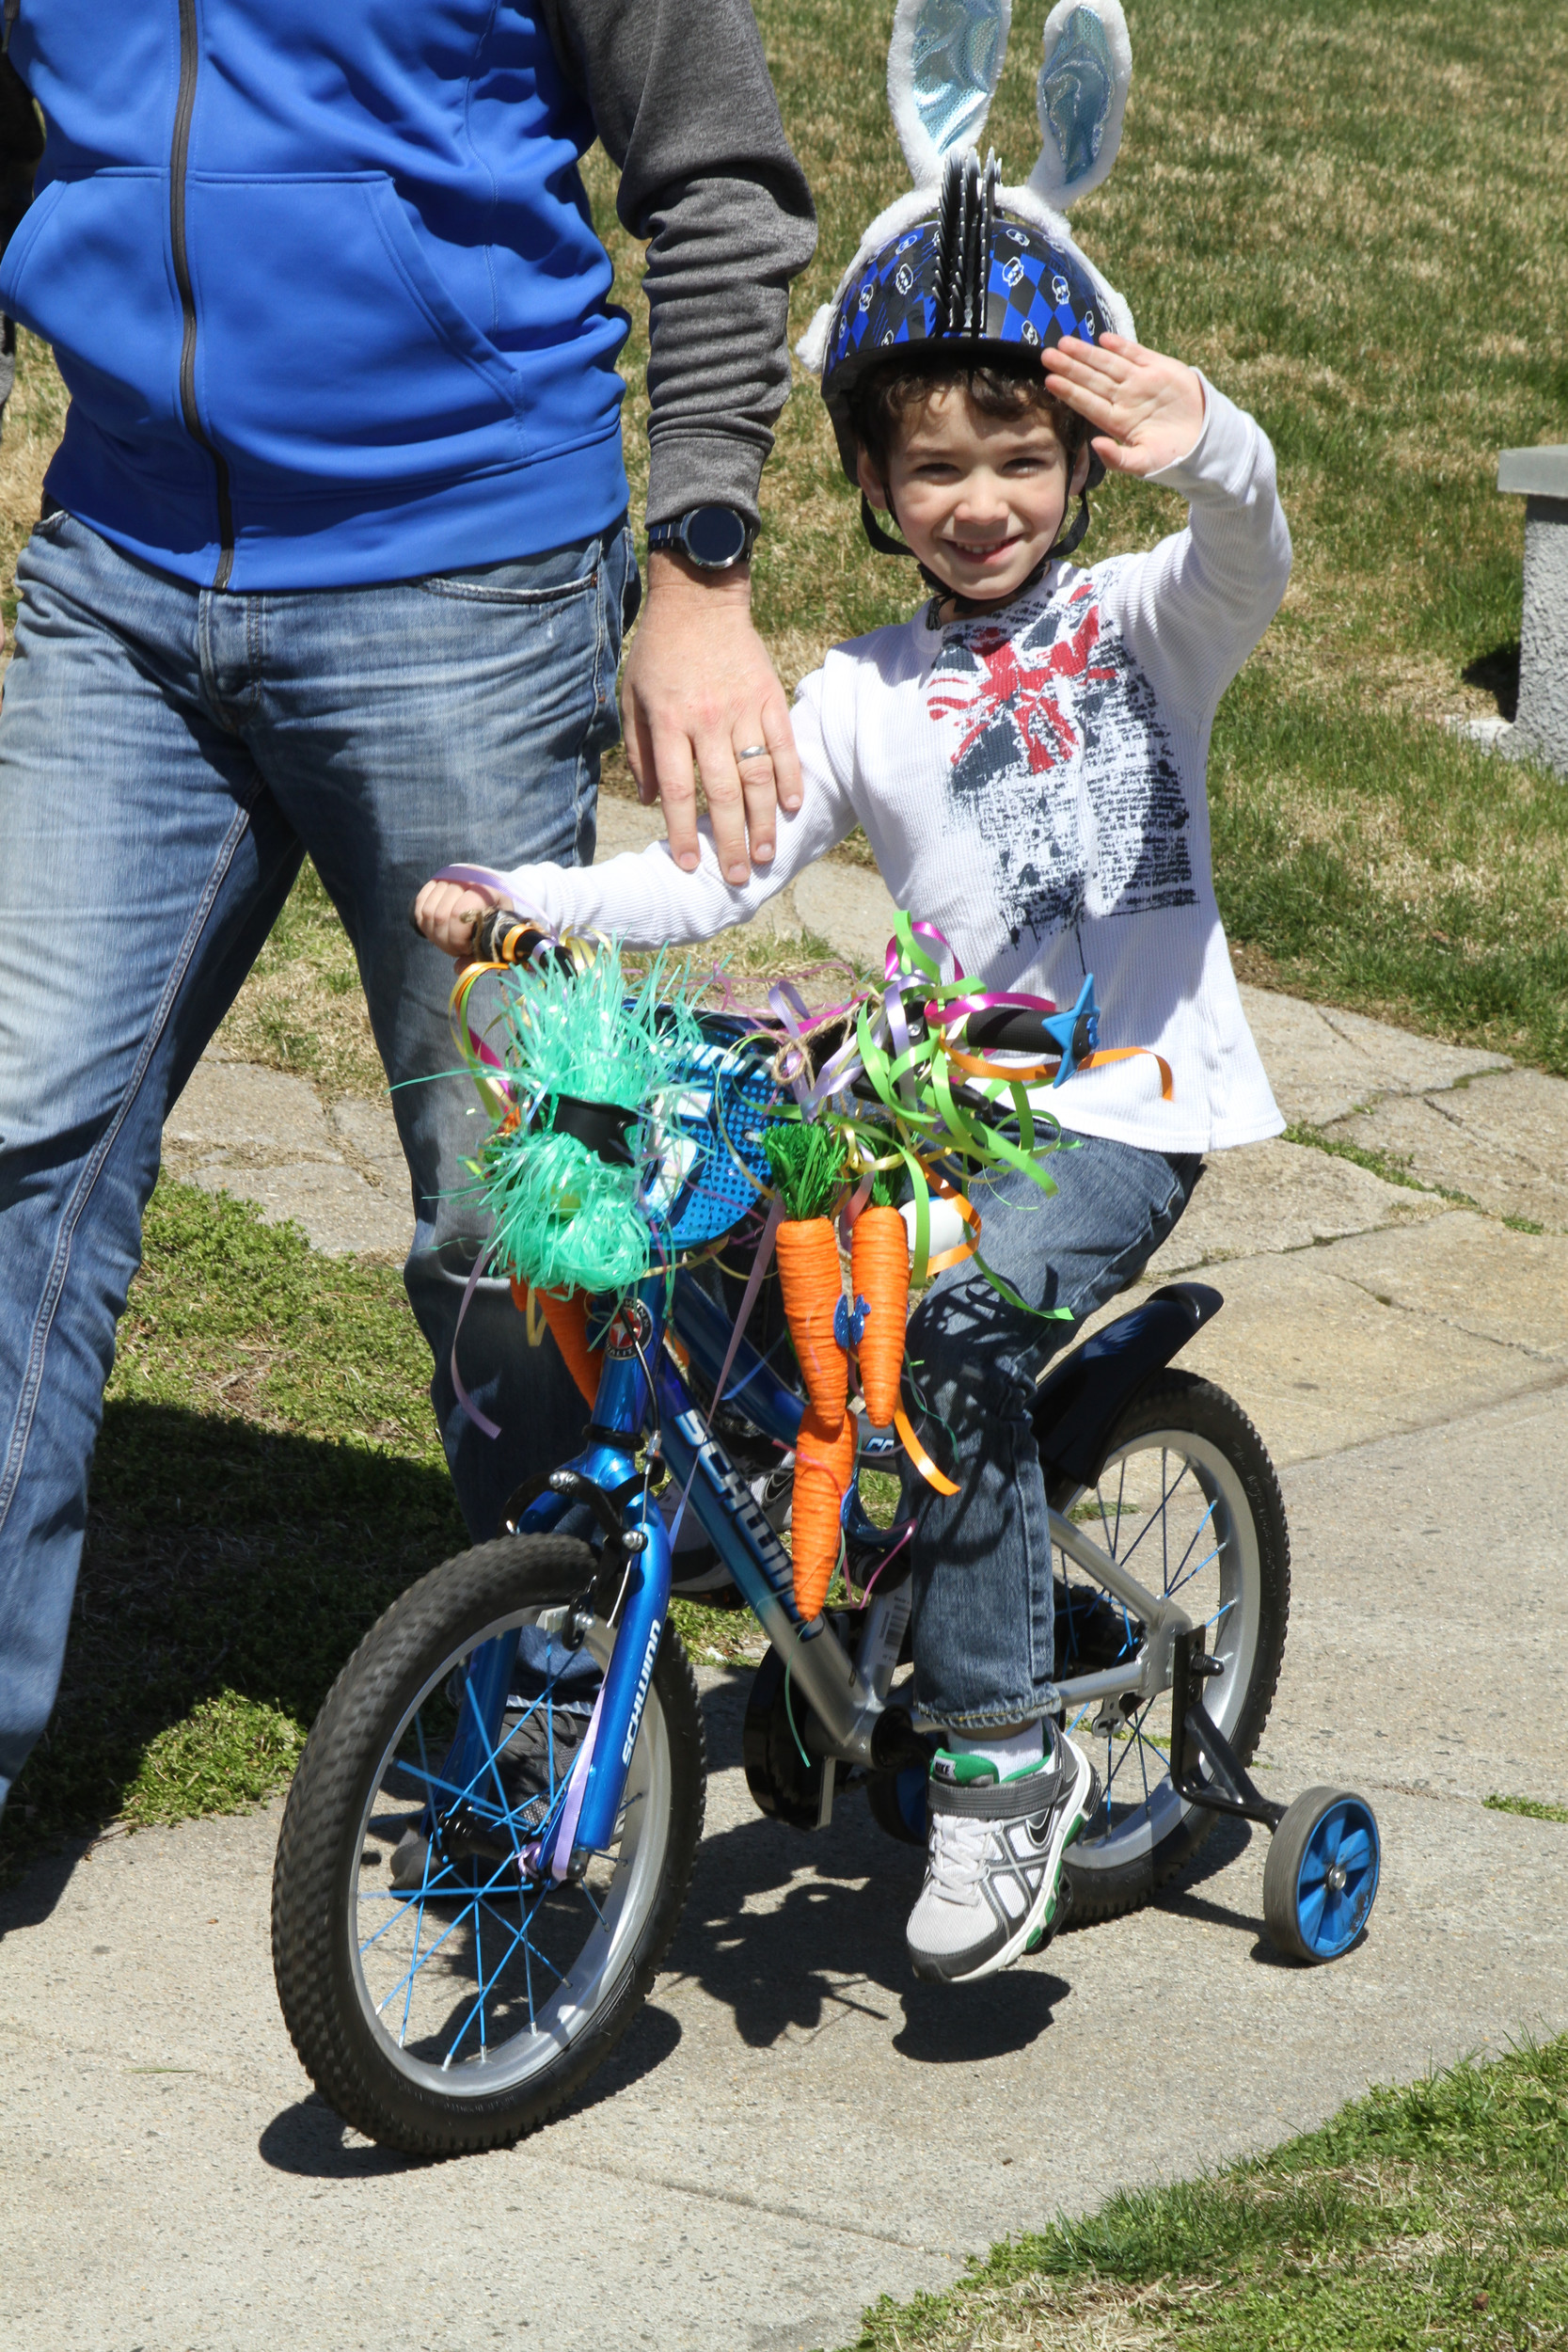 Matthew Travia, 5, was one of many children who decorated their bike for the Easter parade.